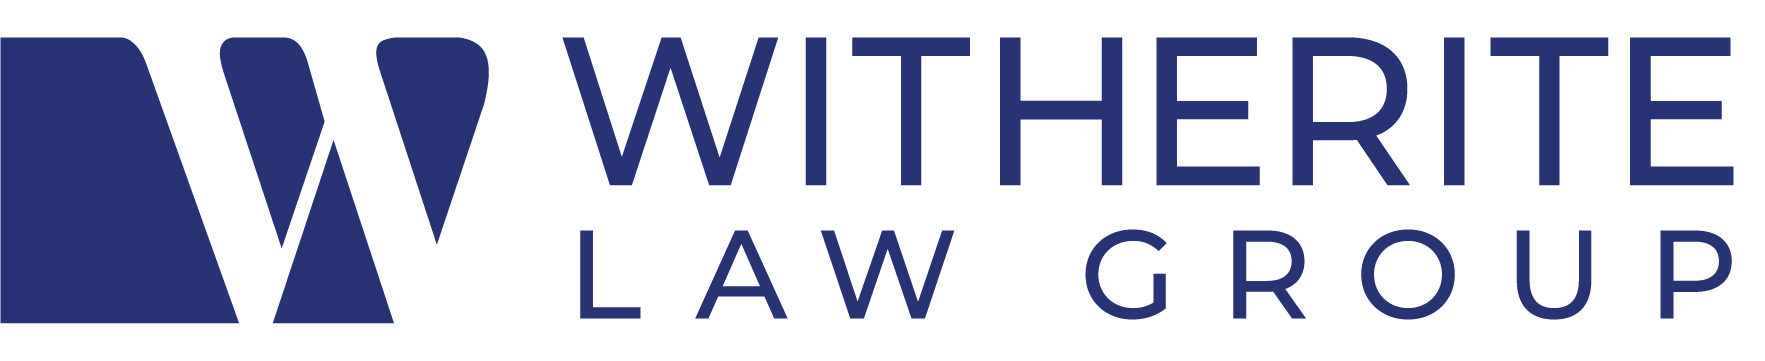 Witherite Law Group Reviews, Ratings | Lawyers near 10440 N Central Expy , Dallas TX